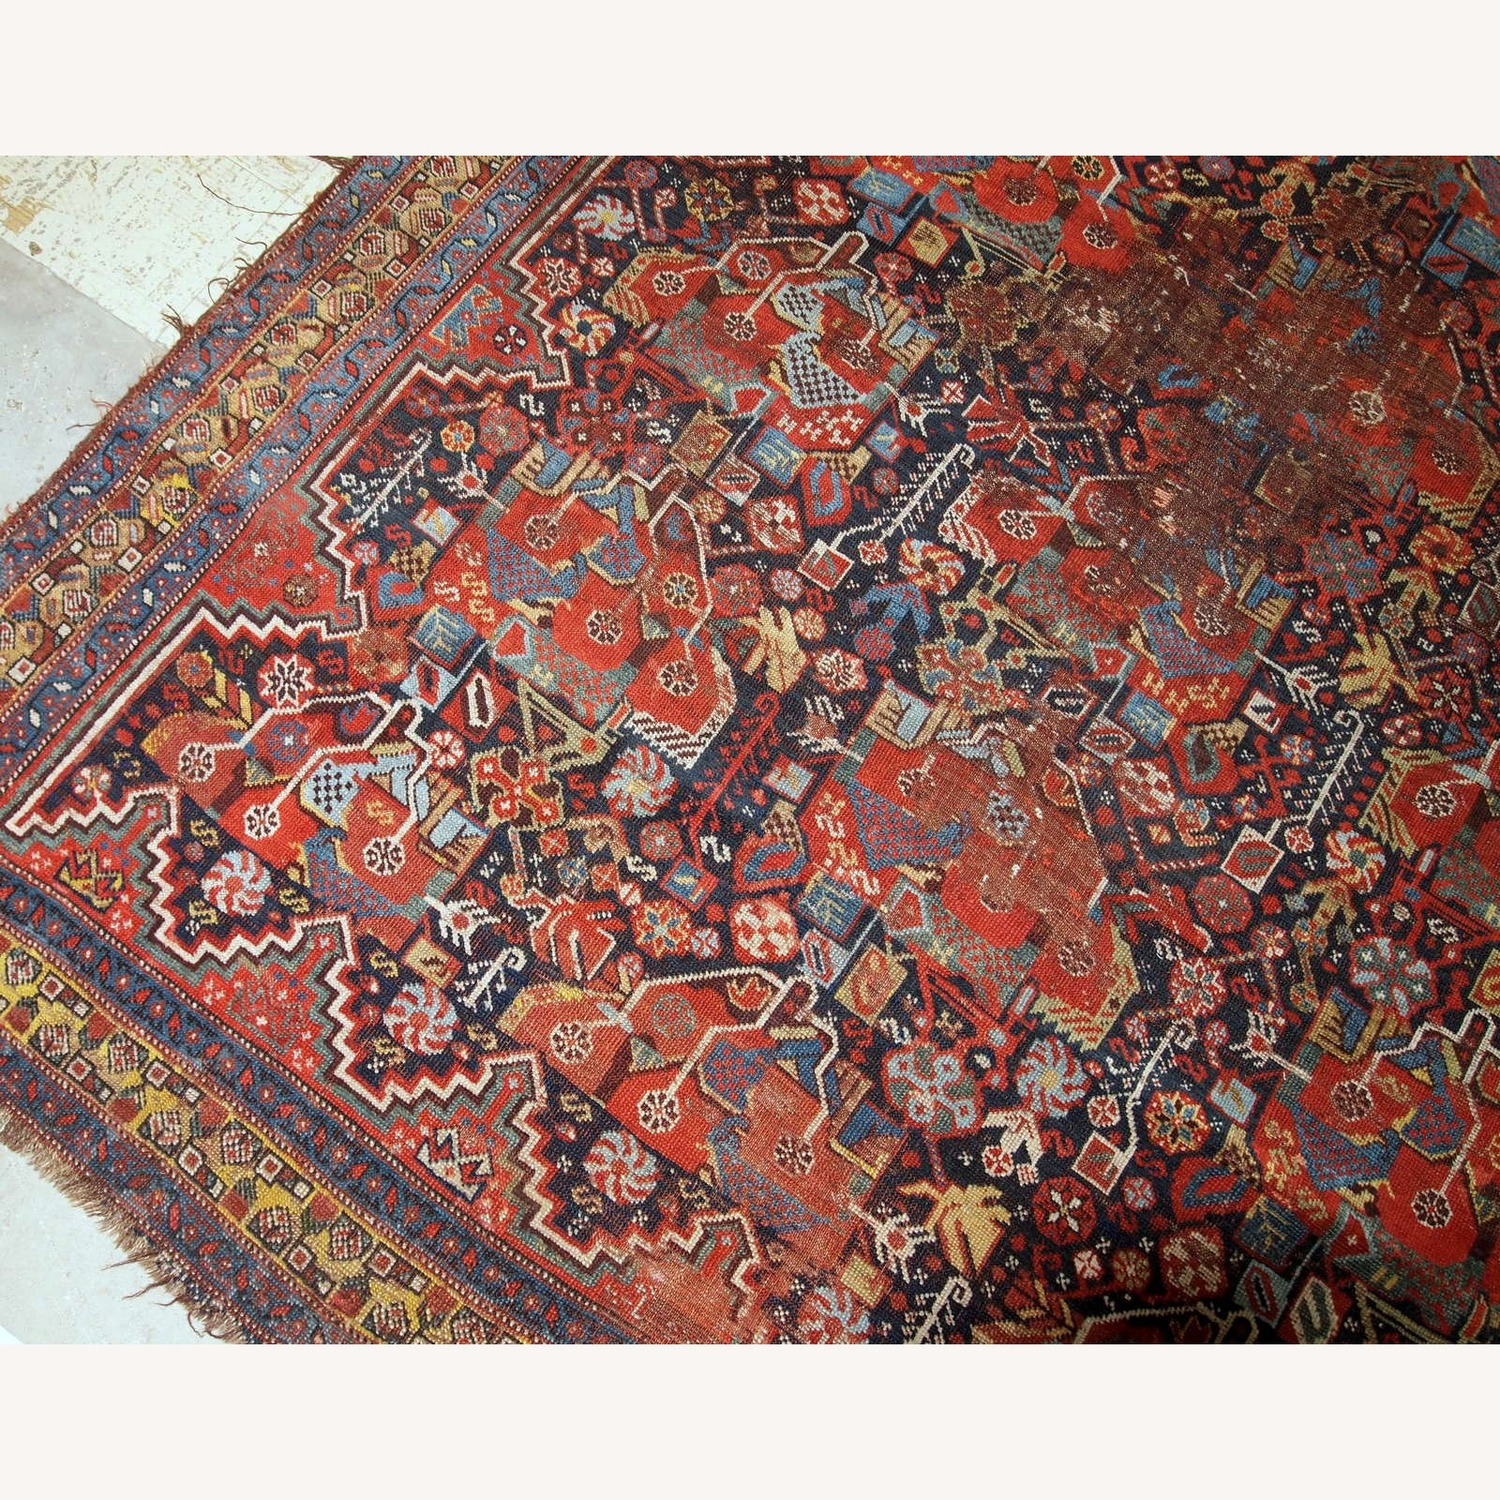 Handmade Antique Collectible Persian Khamseh Rug - image-7